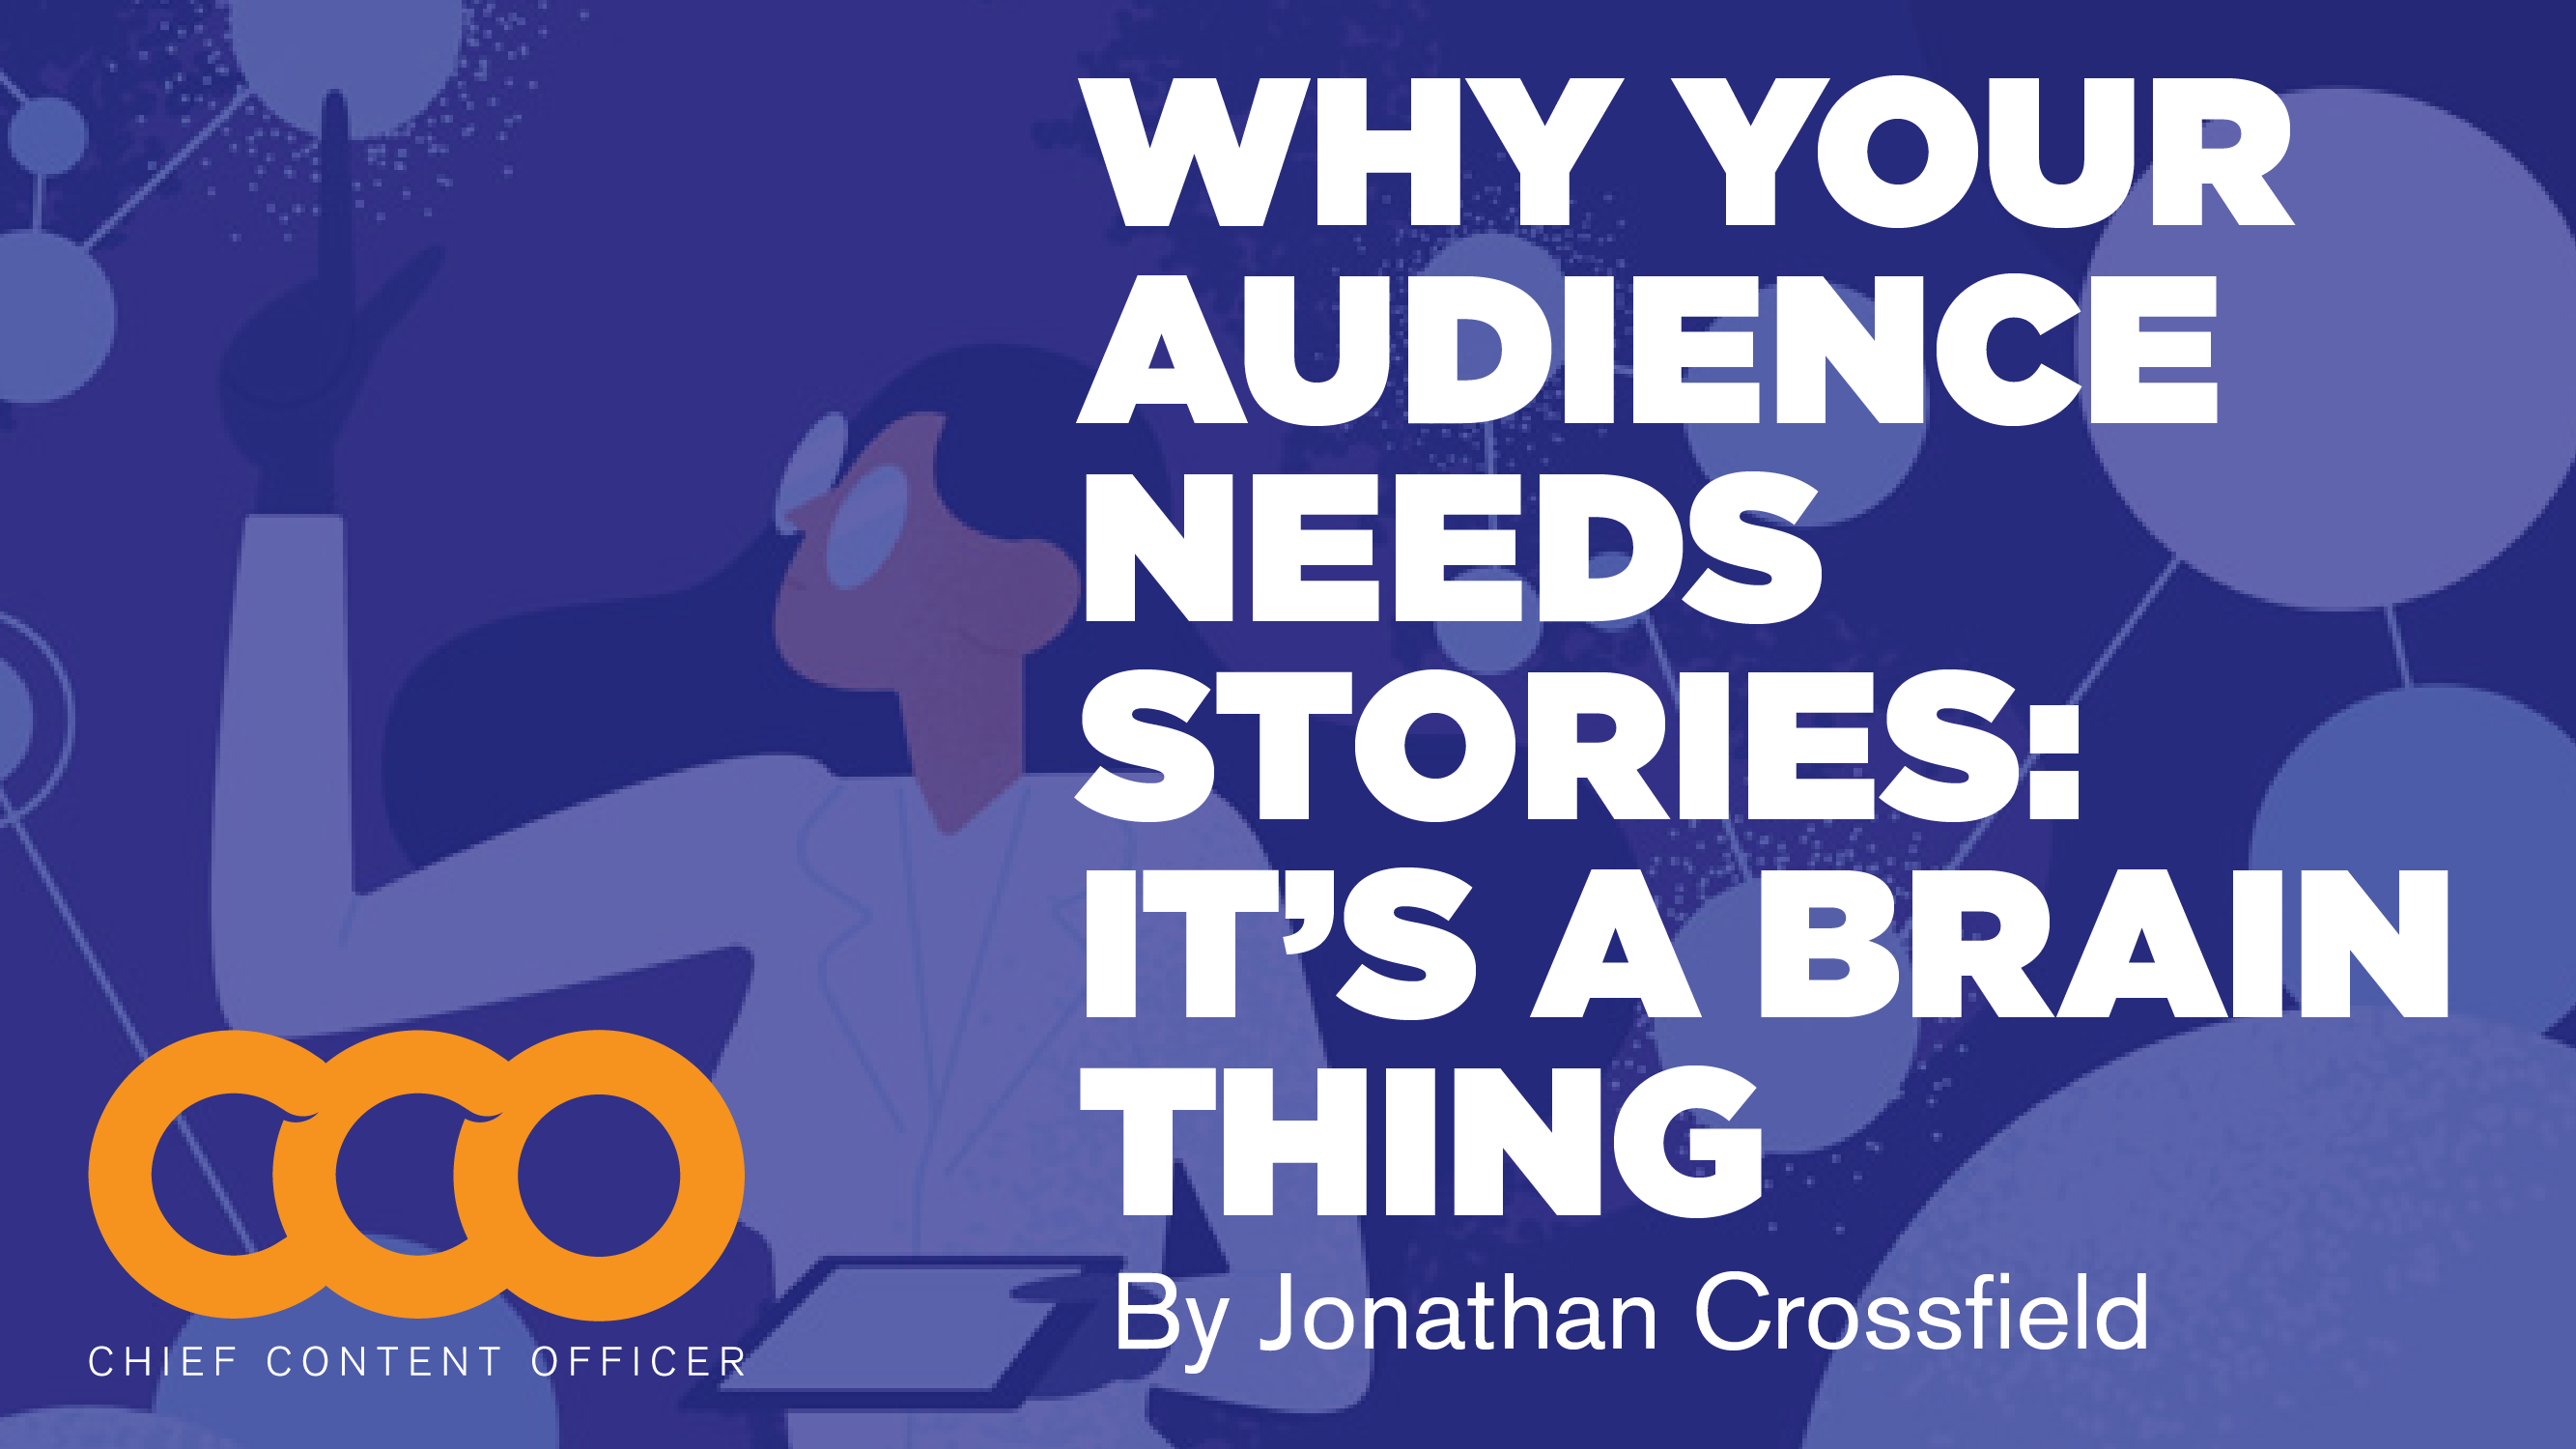 Why Your Audience Needs Stories: It's a Brain Thing